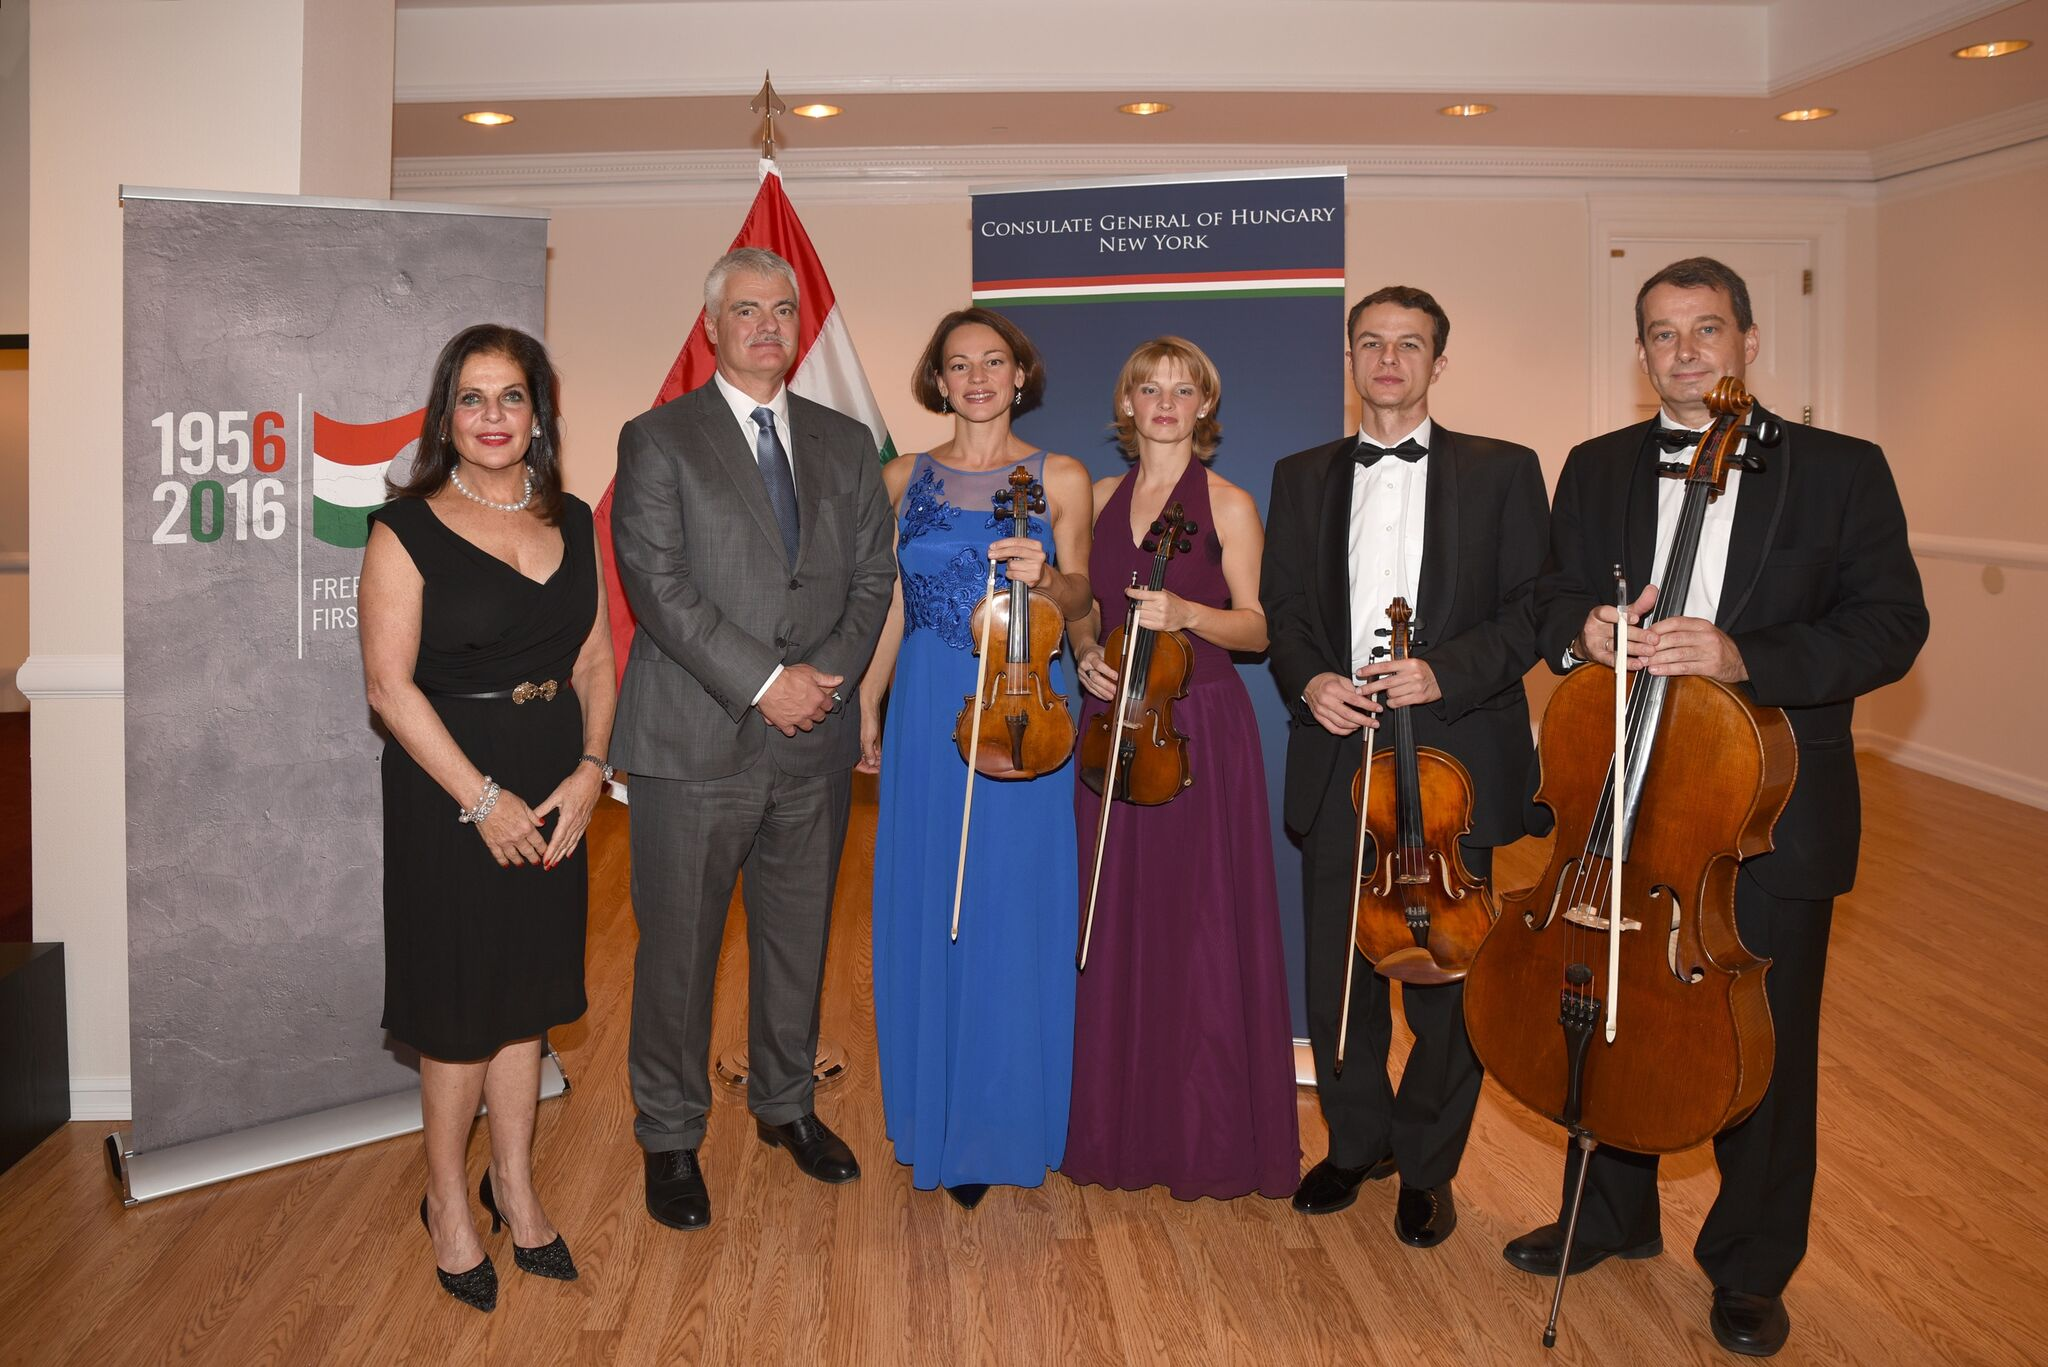 The Friends of the Budapest Festival Orchestra Kicks Off Music Season & Commemorates 60th Anniversary of the 1956 Hungarian Revolution with a Musicale at the Hungarian Consulate